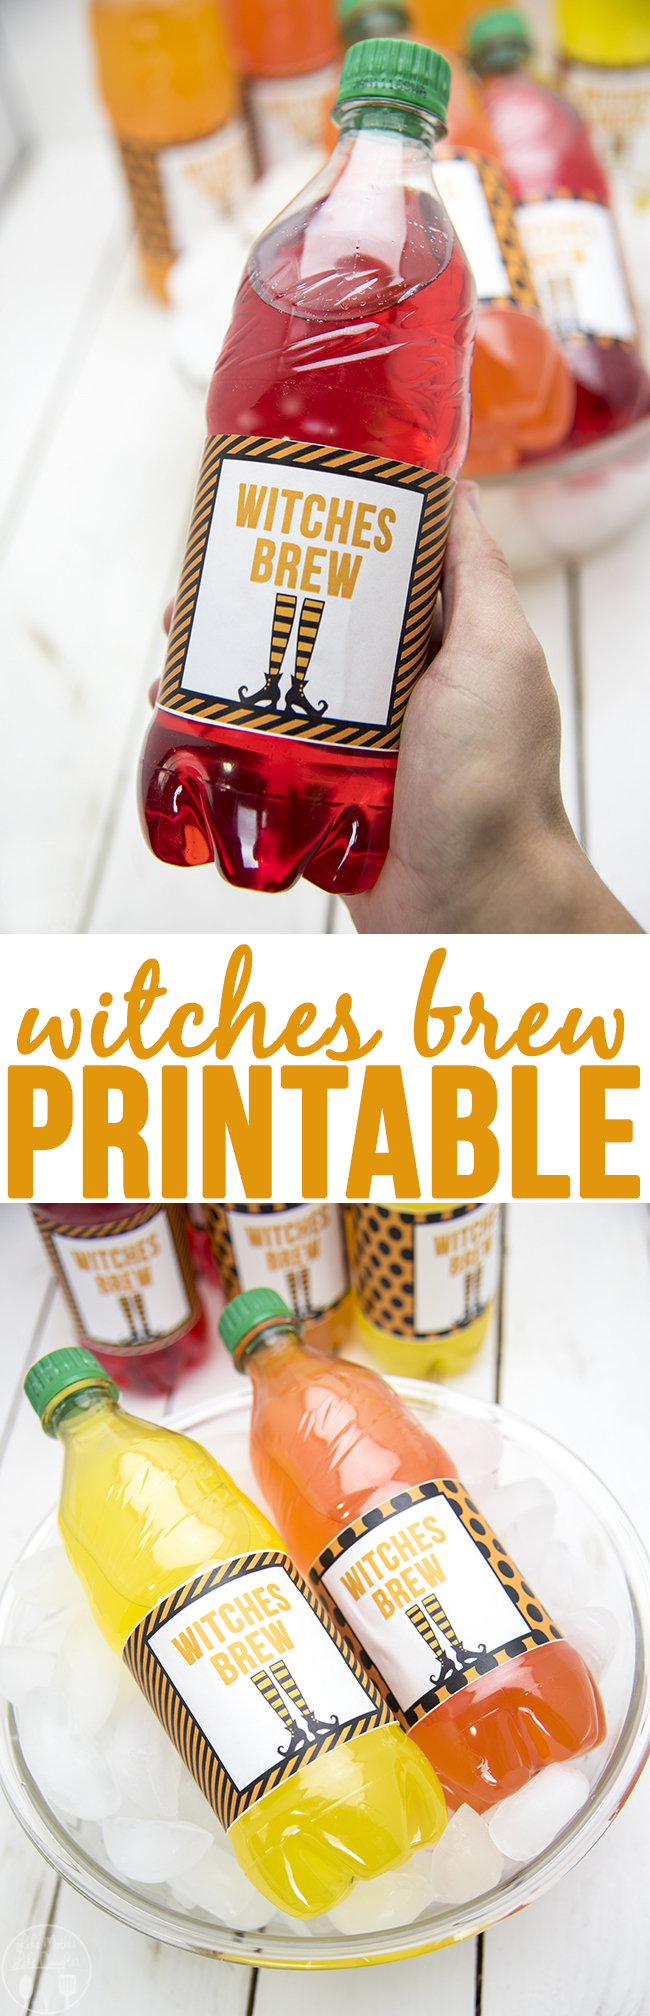 Witches Brew Printable - a cute printable to go around drink bottles, perfect for halloween!